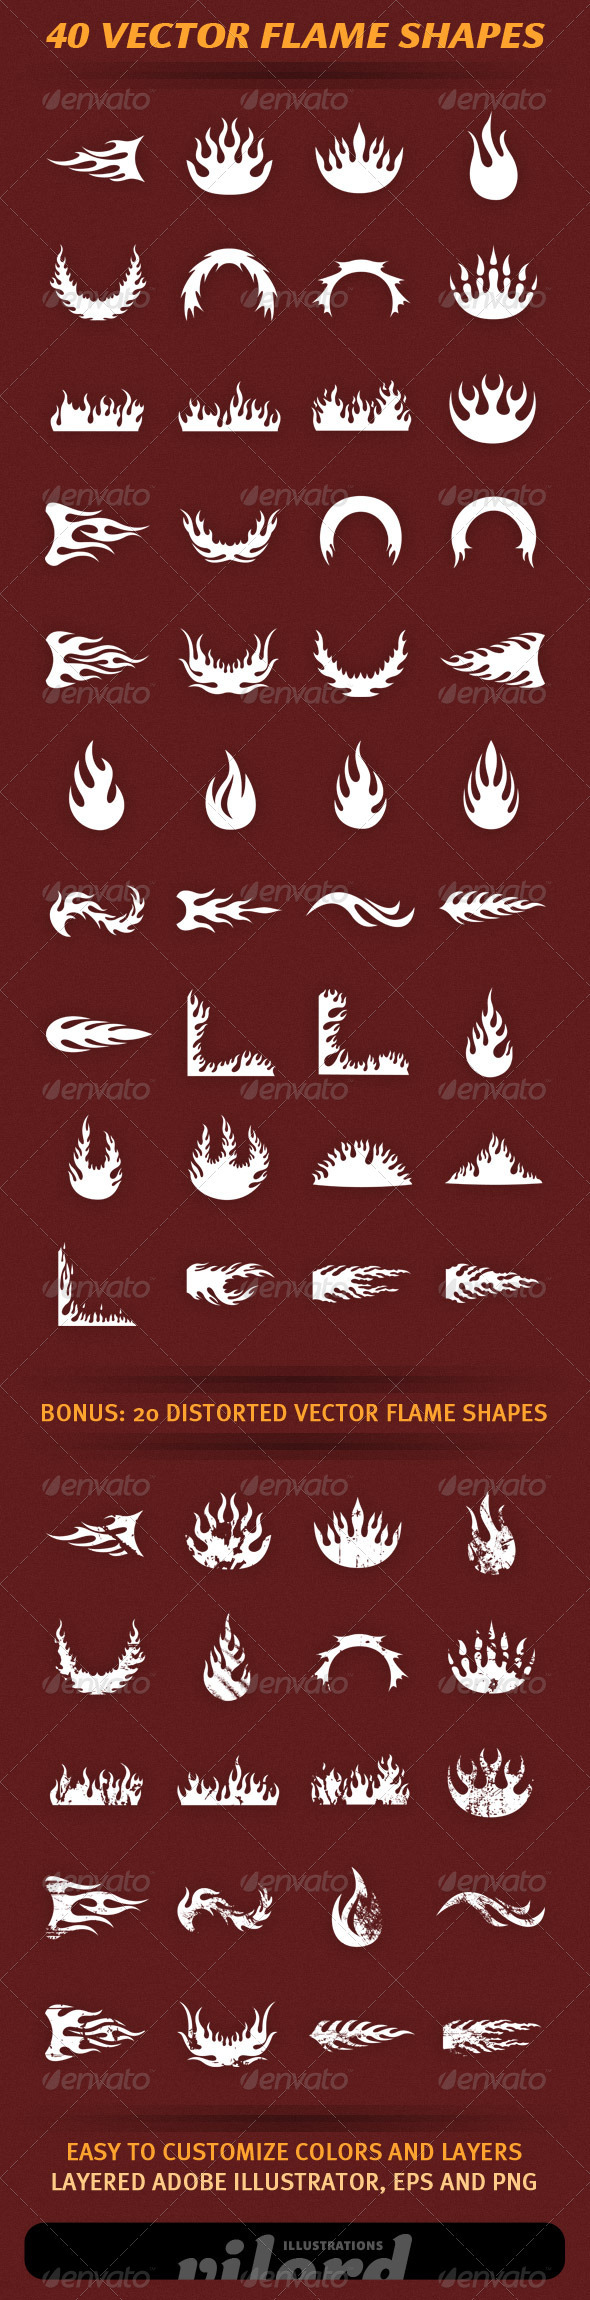 40 Vector Flame Shapes 2 - Decorative Vectors